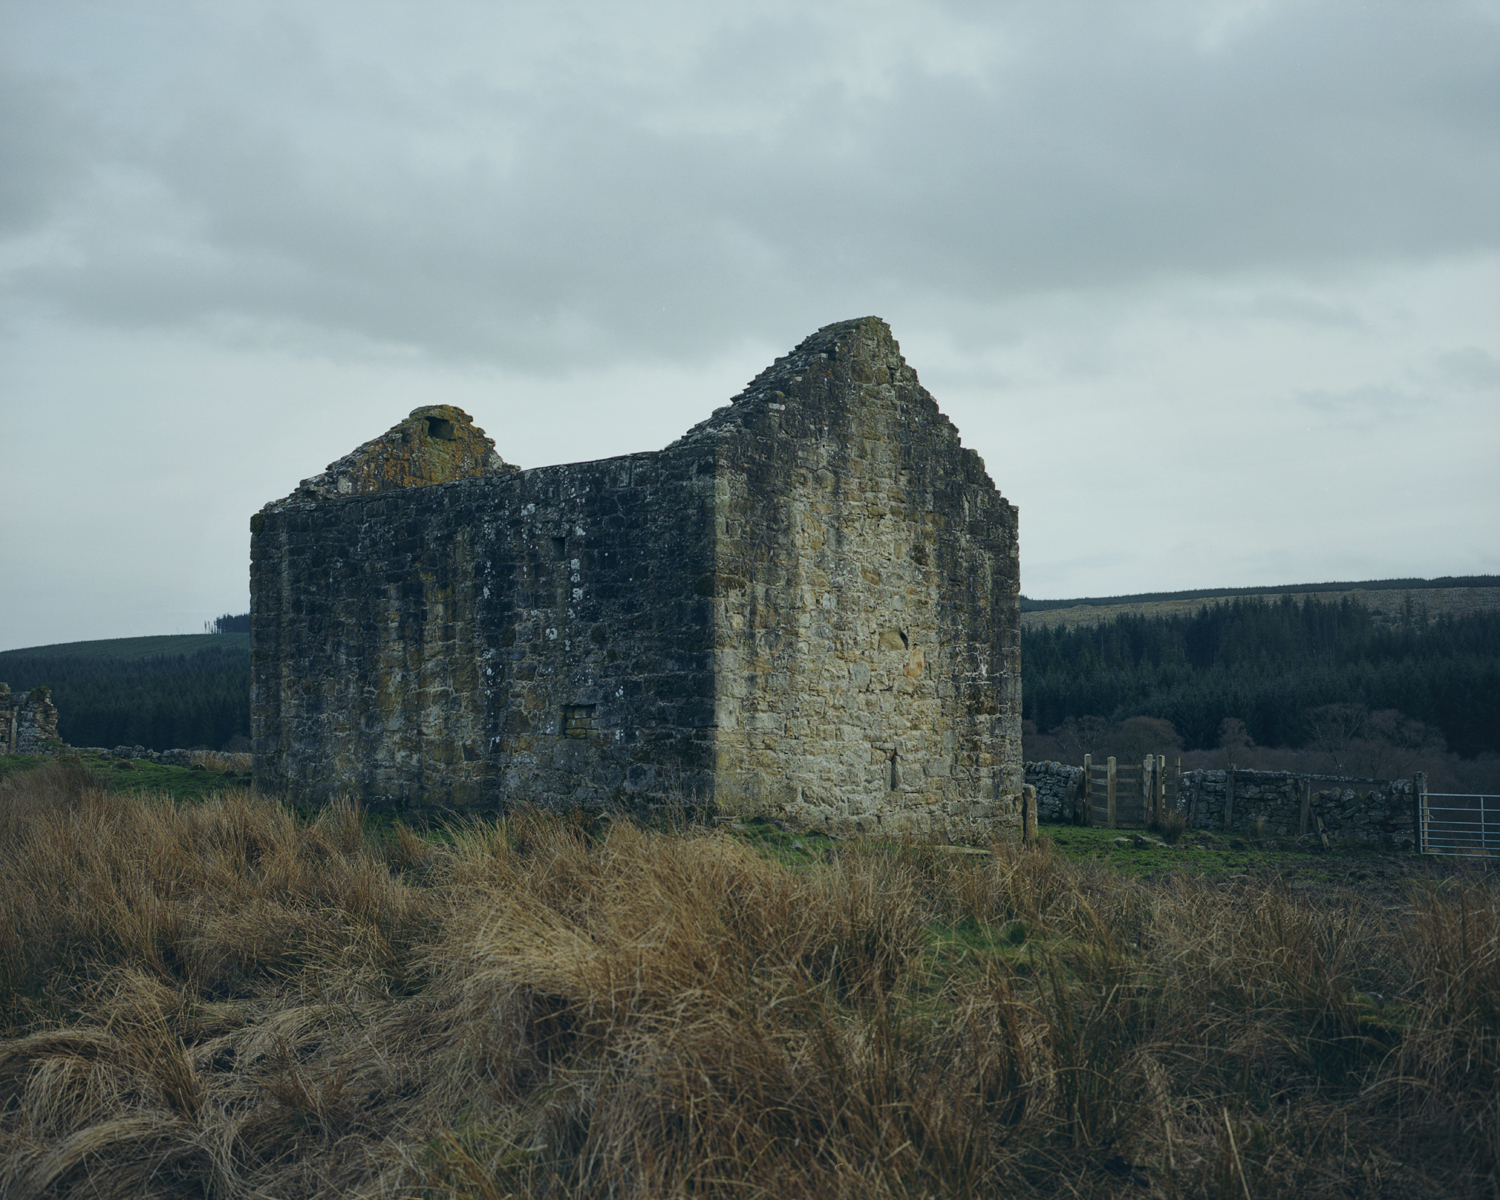 The Black Middens Bastle House. A 16th century fortified farmhouse built to defend and protect farmers and their livestock, Tarset Valley in Northumberland.